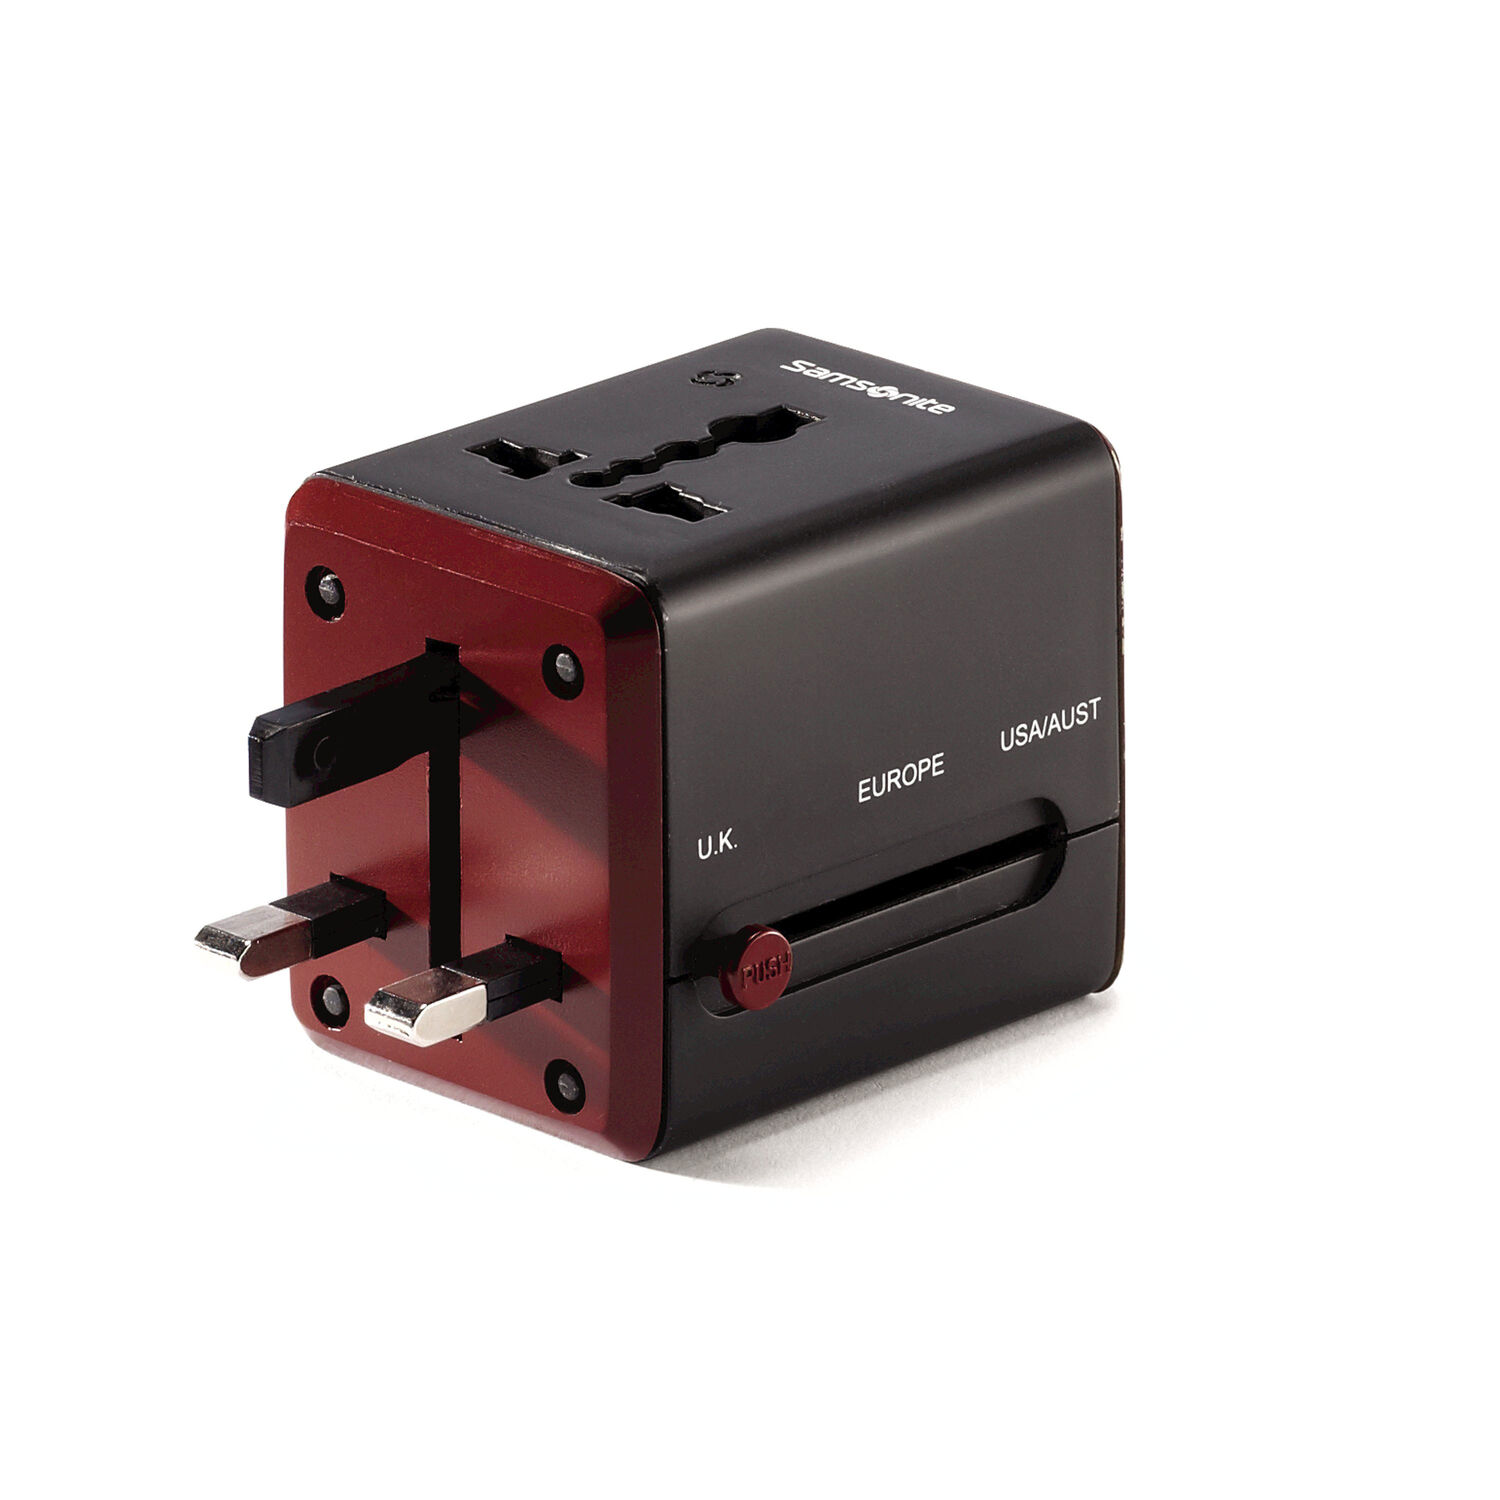 Samsonite World Wide Power Adapter In The Color Black Red